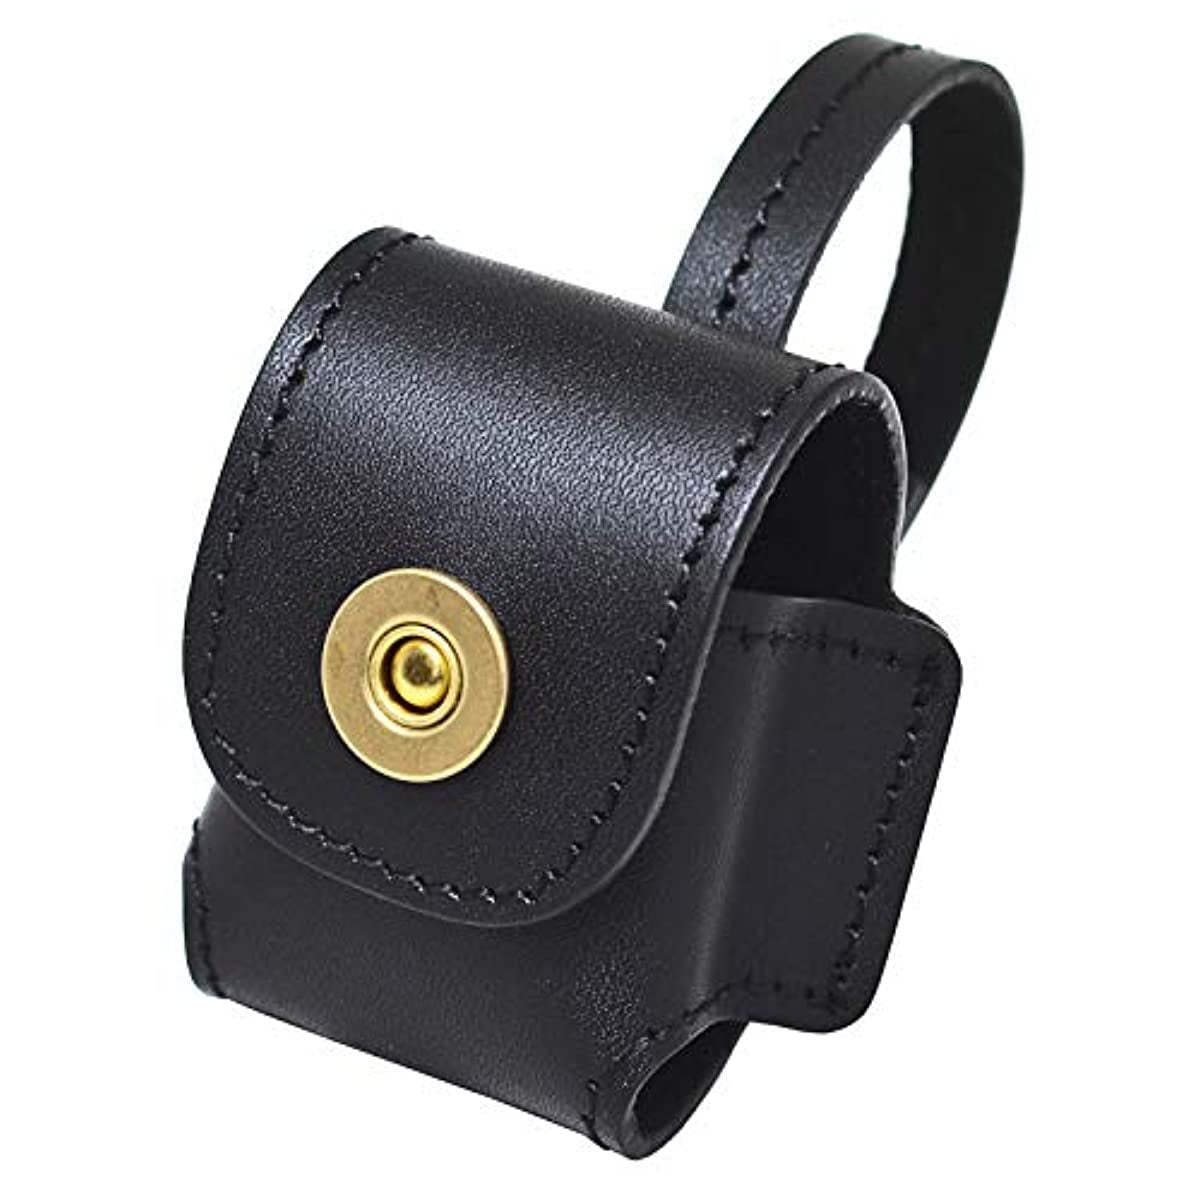 AirPods Leather Case Protective Portable Cover Skin Brass Clasp with Keychain Ring for Apple AirPods Charging Case - ENCACC